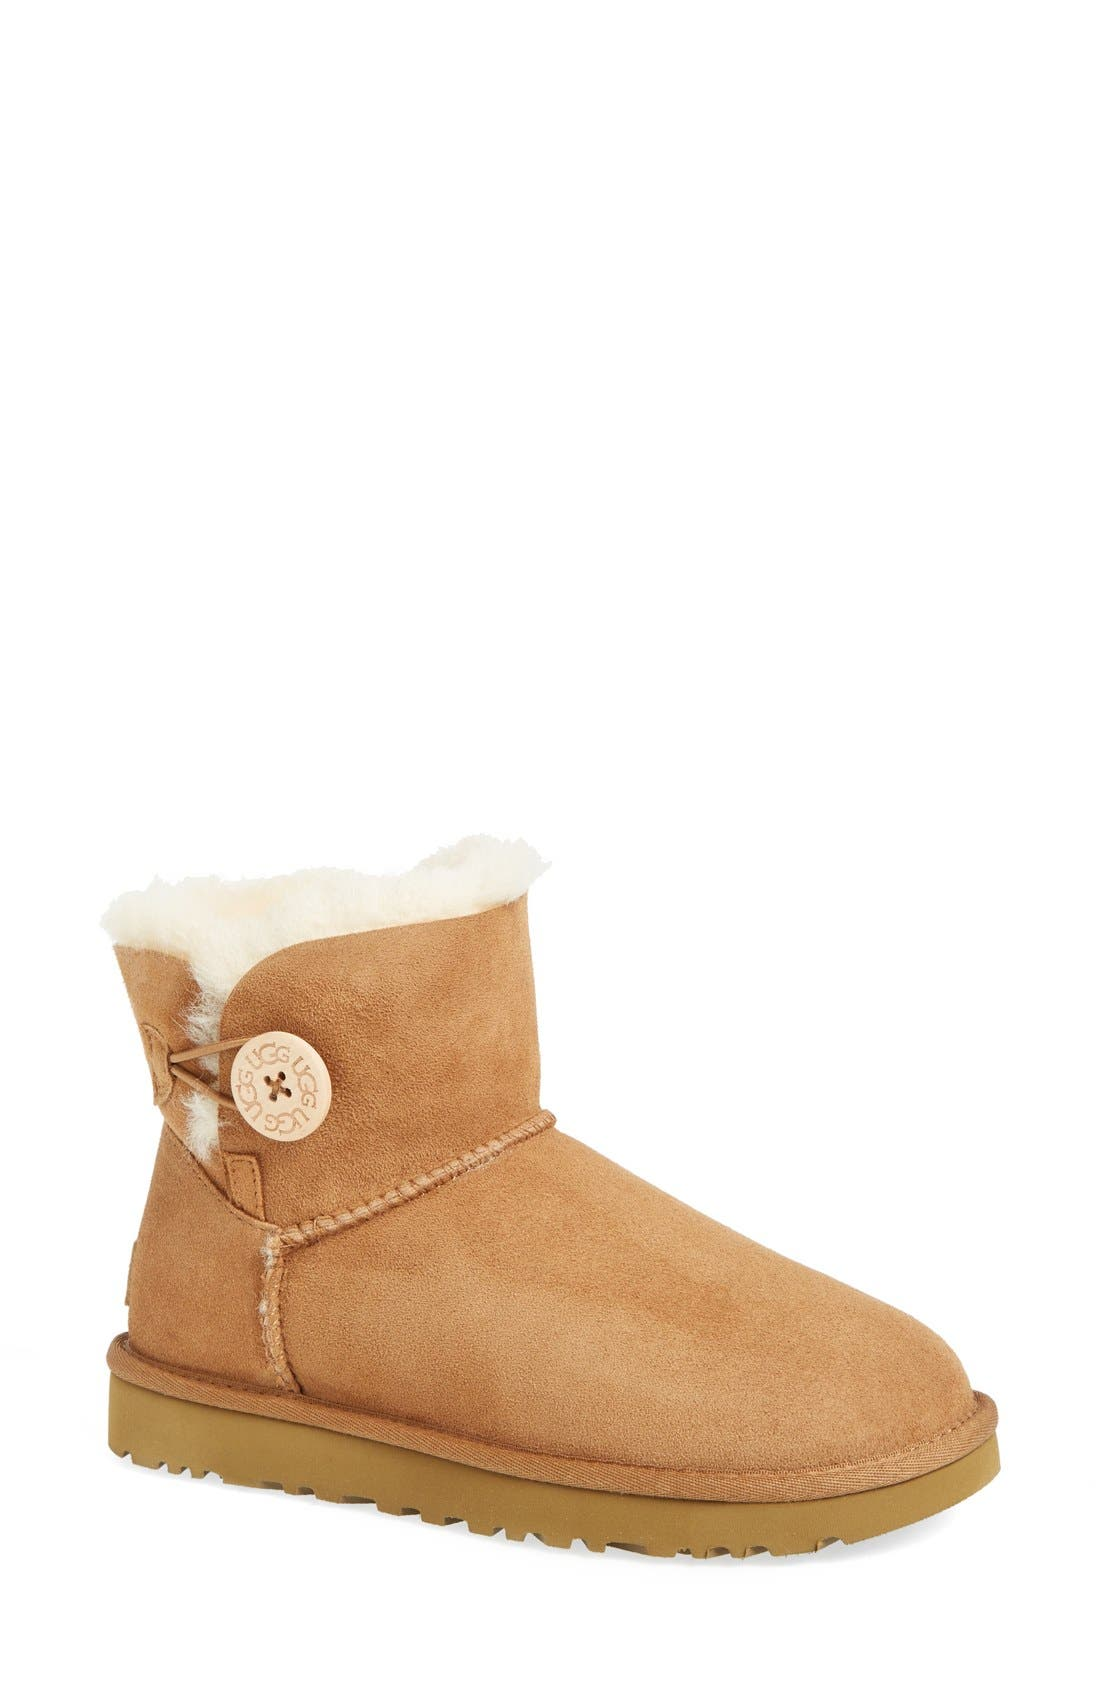 Alternate Image 1 Selected - UGG® 'Mini Bailey Button II' Boot (Women)